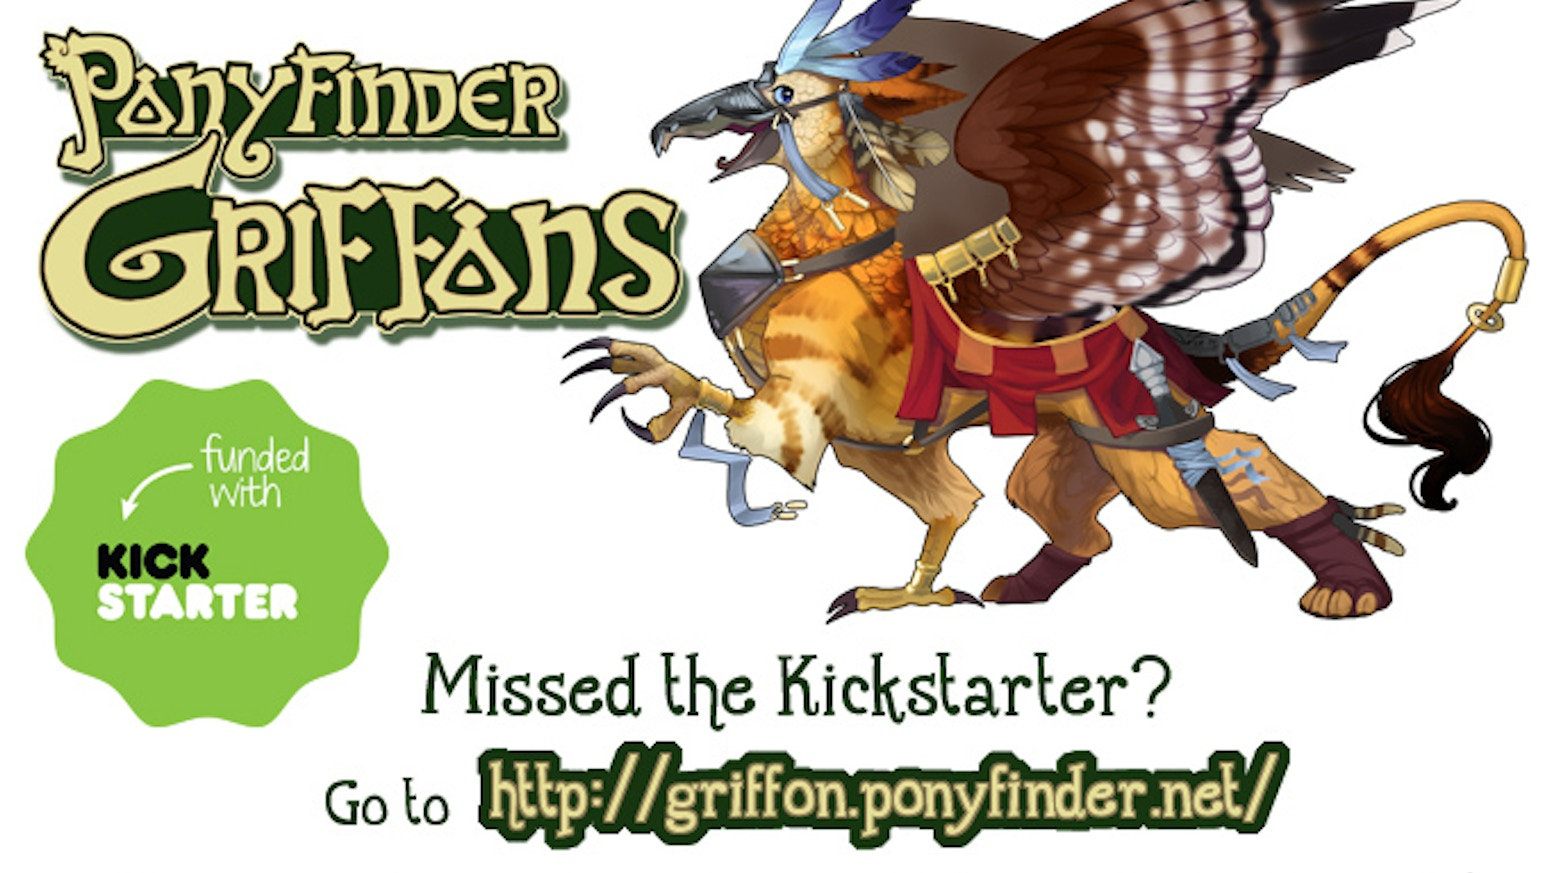 Ponyfinder: Griffons of Everglow Pathfinder Expansion by Silver